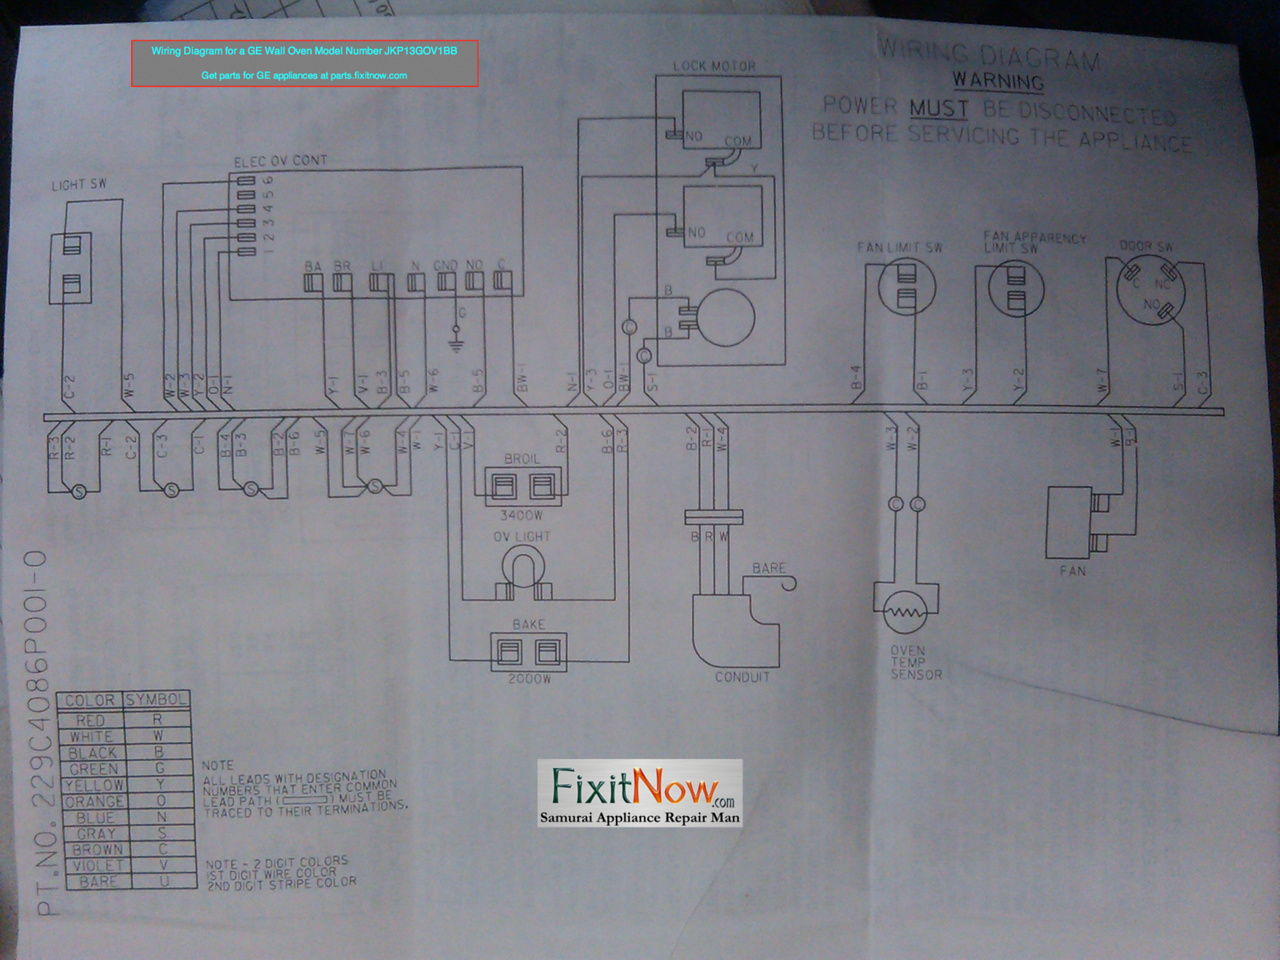 wiring diagrams and schematics appliantology wiring diagram for a ge wall oven model number jkp13gov1bb